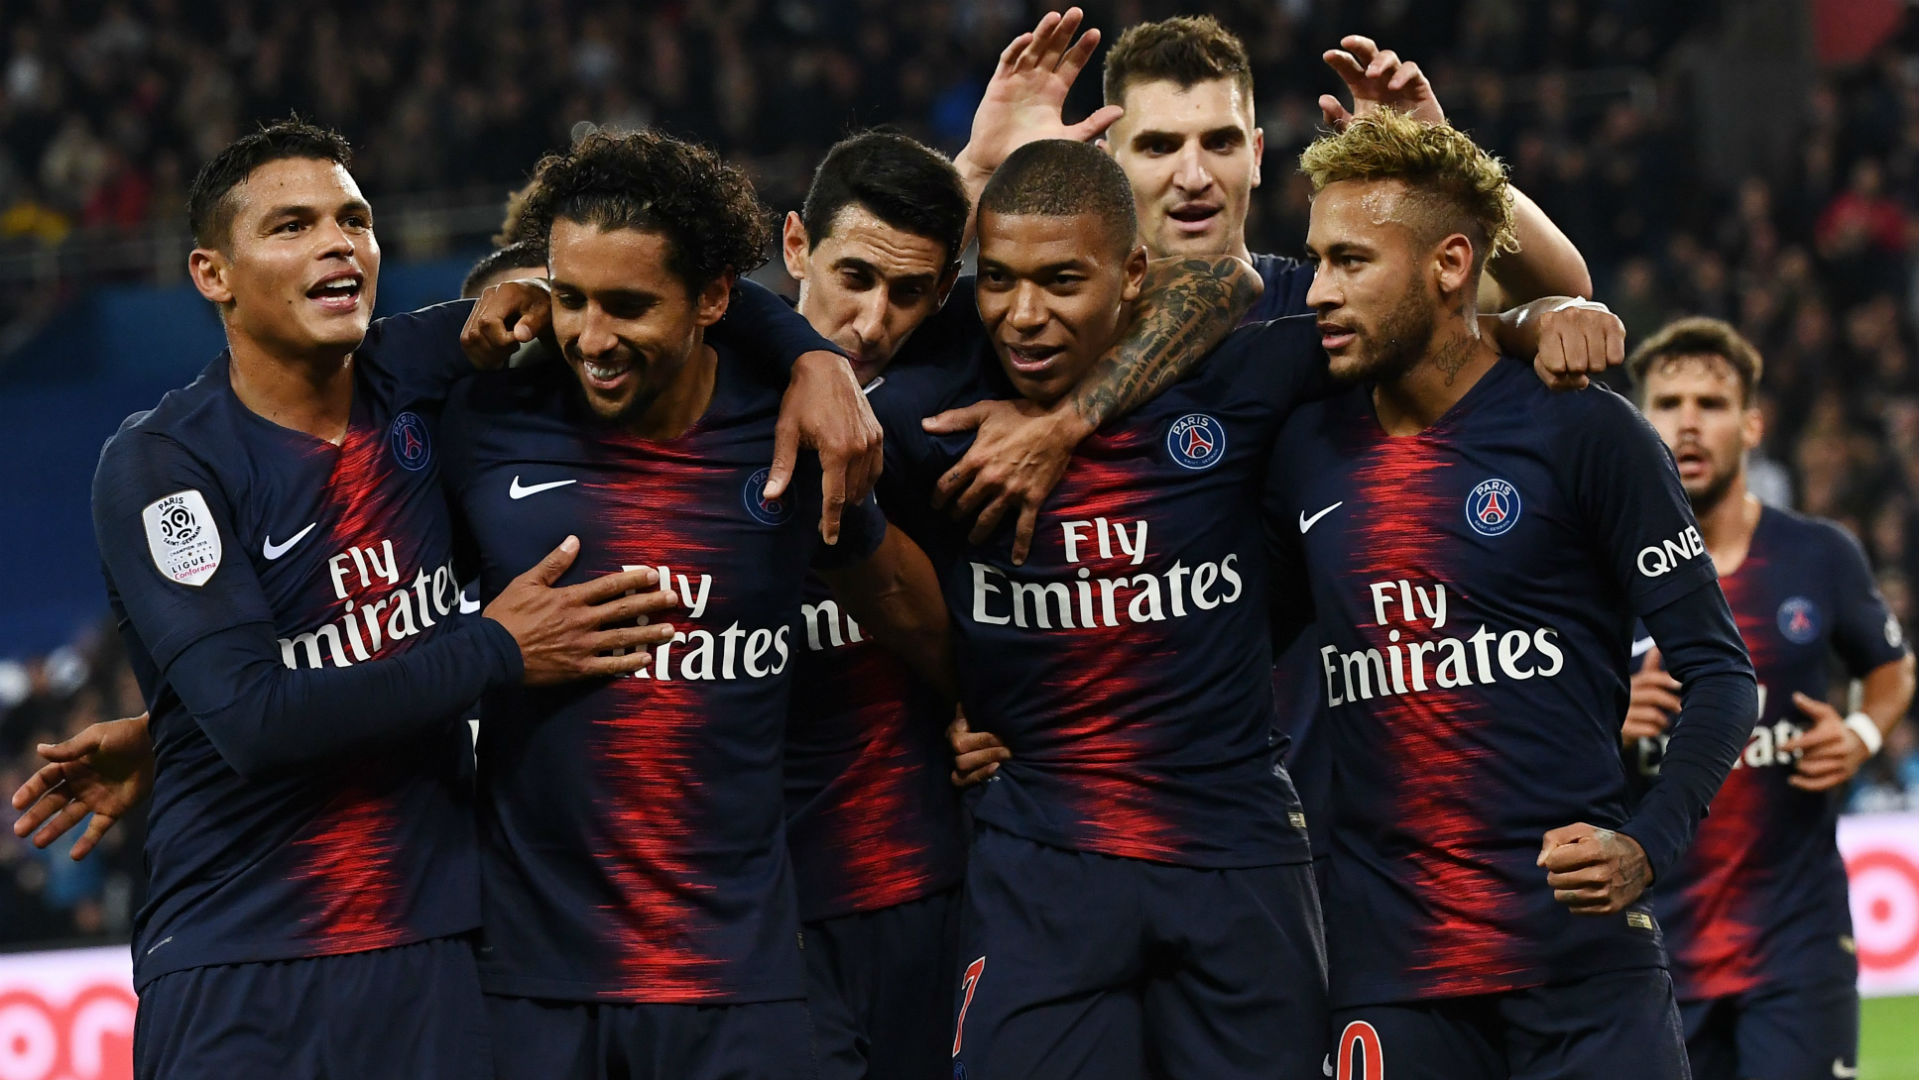 'I should have scored more', says four-goal Mbappe